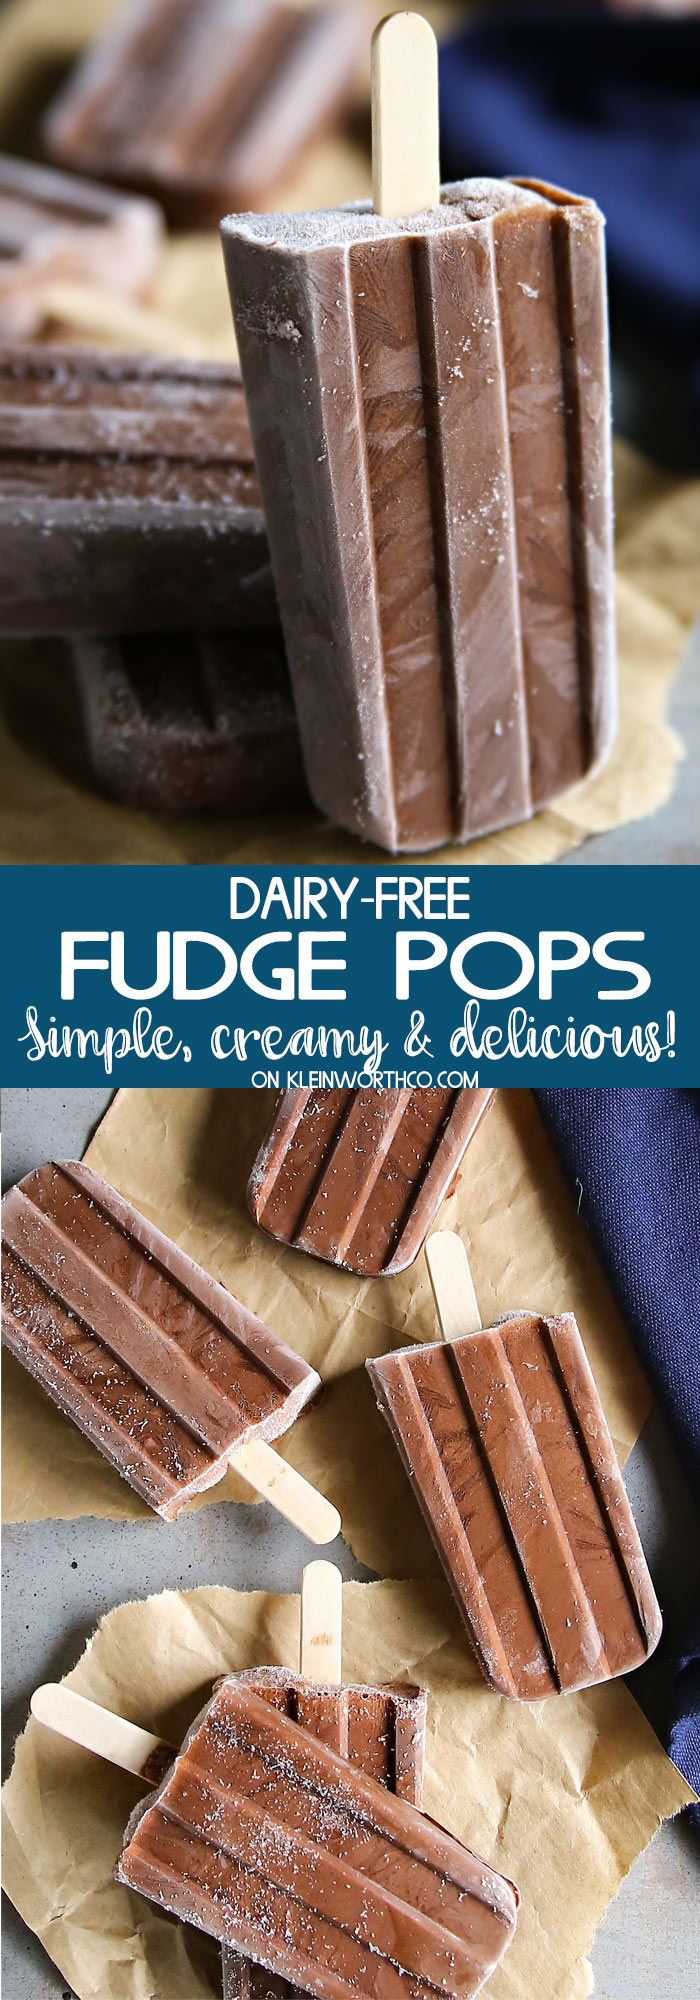 Dairy-Free Fudge Pops